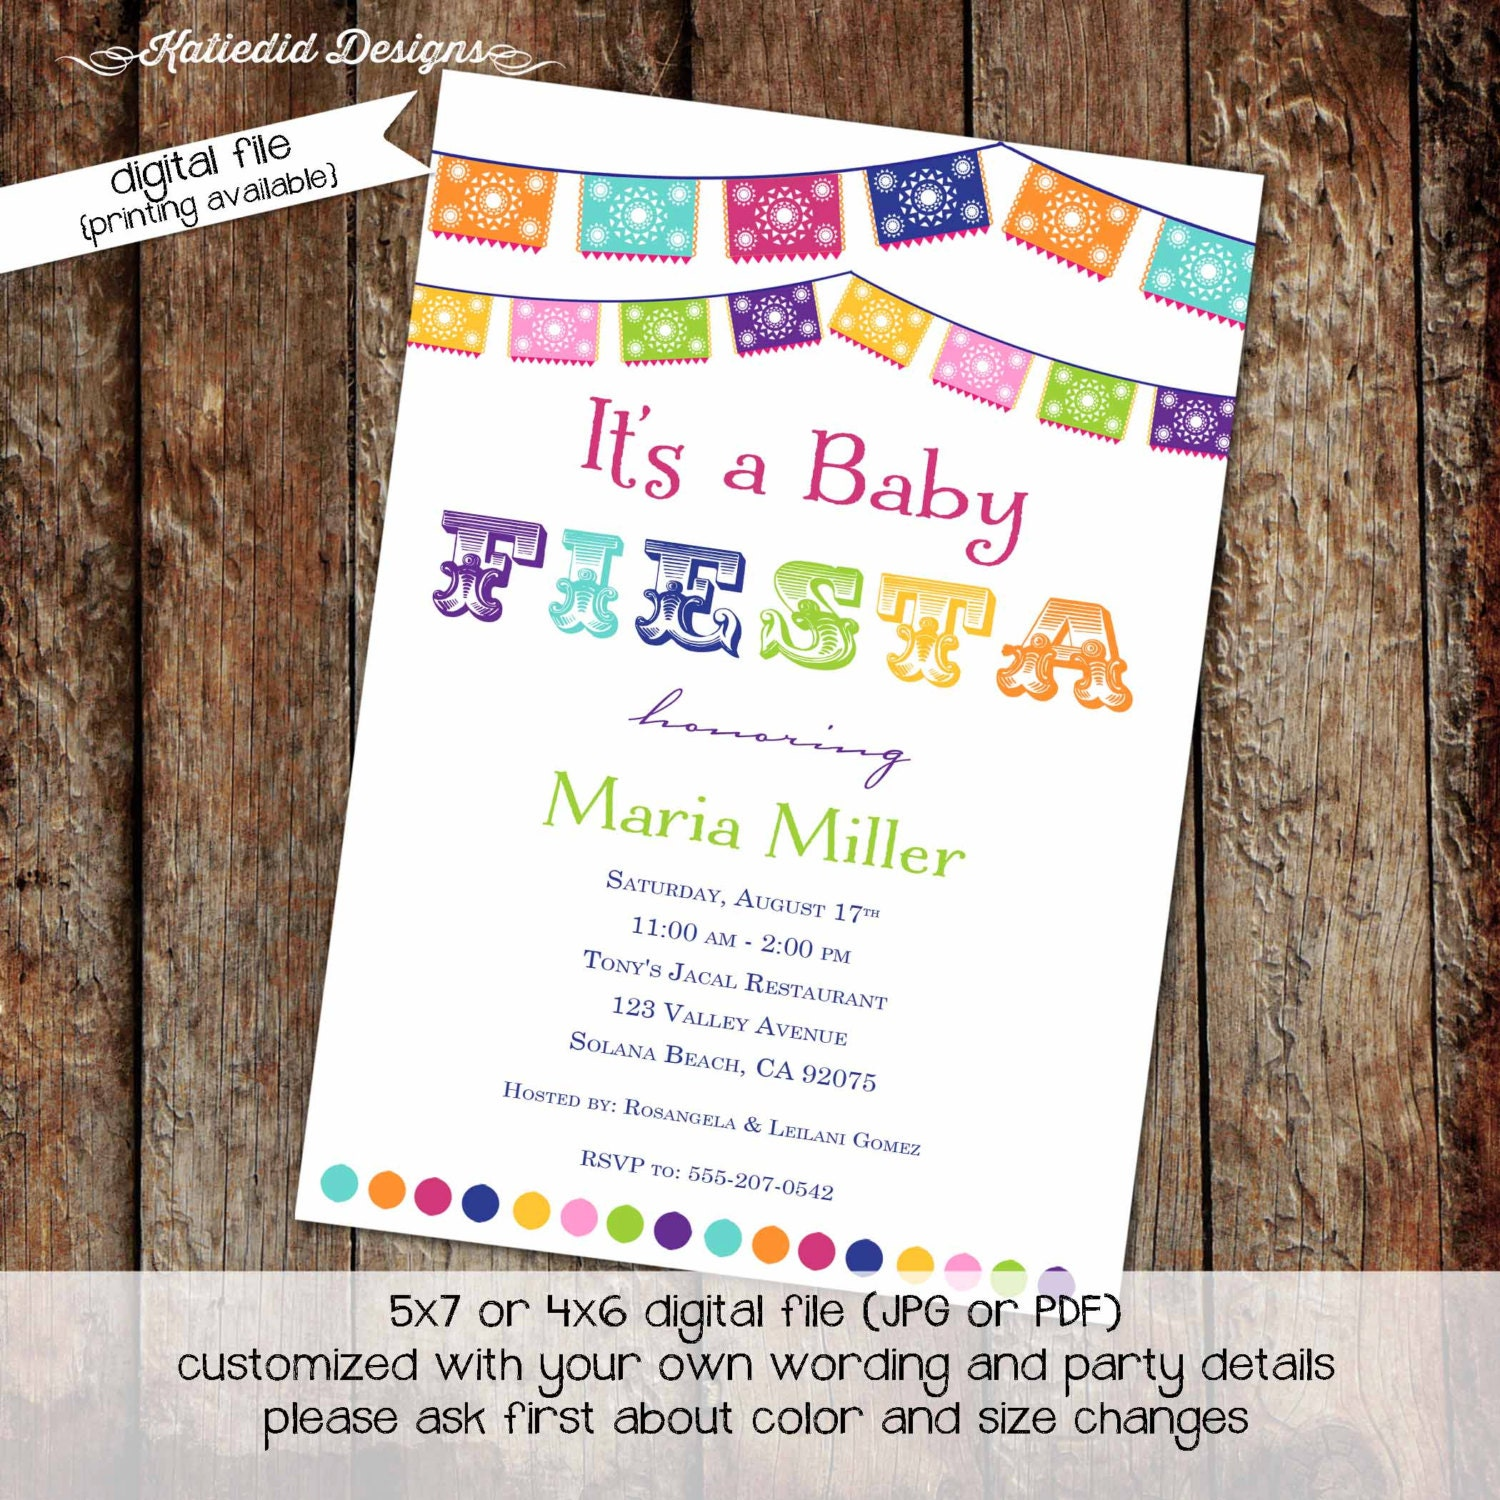 Mexican Party Invites for awesome invitation ideas